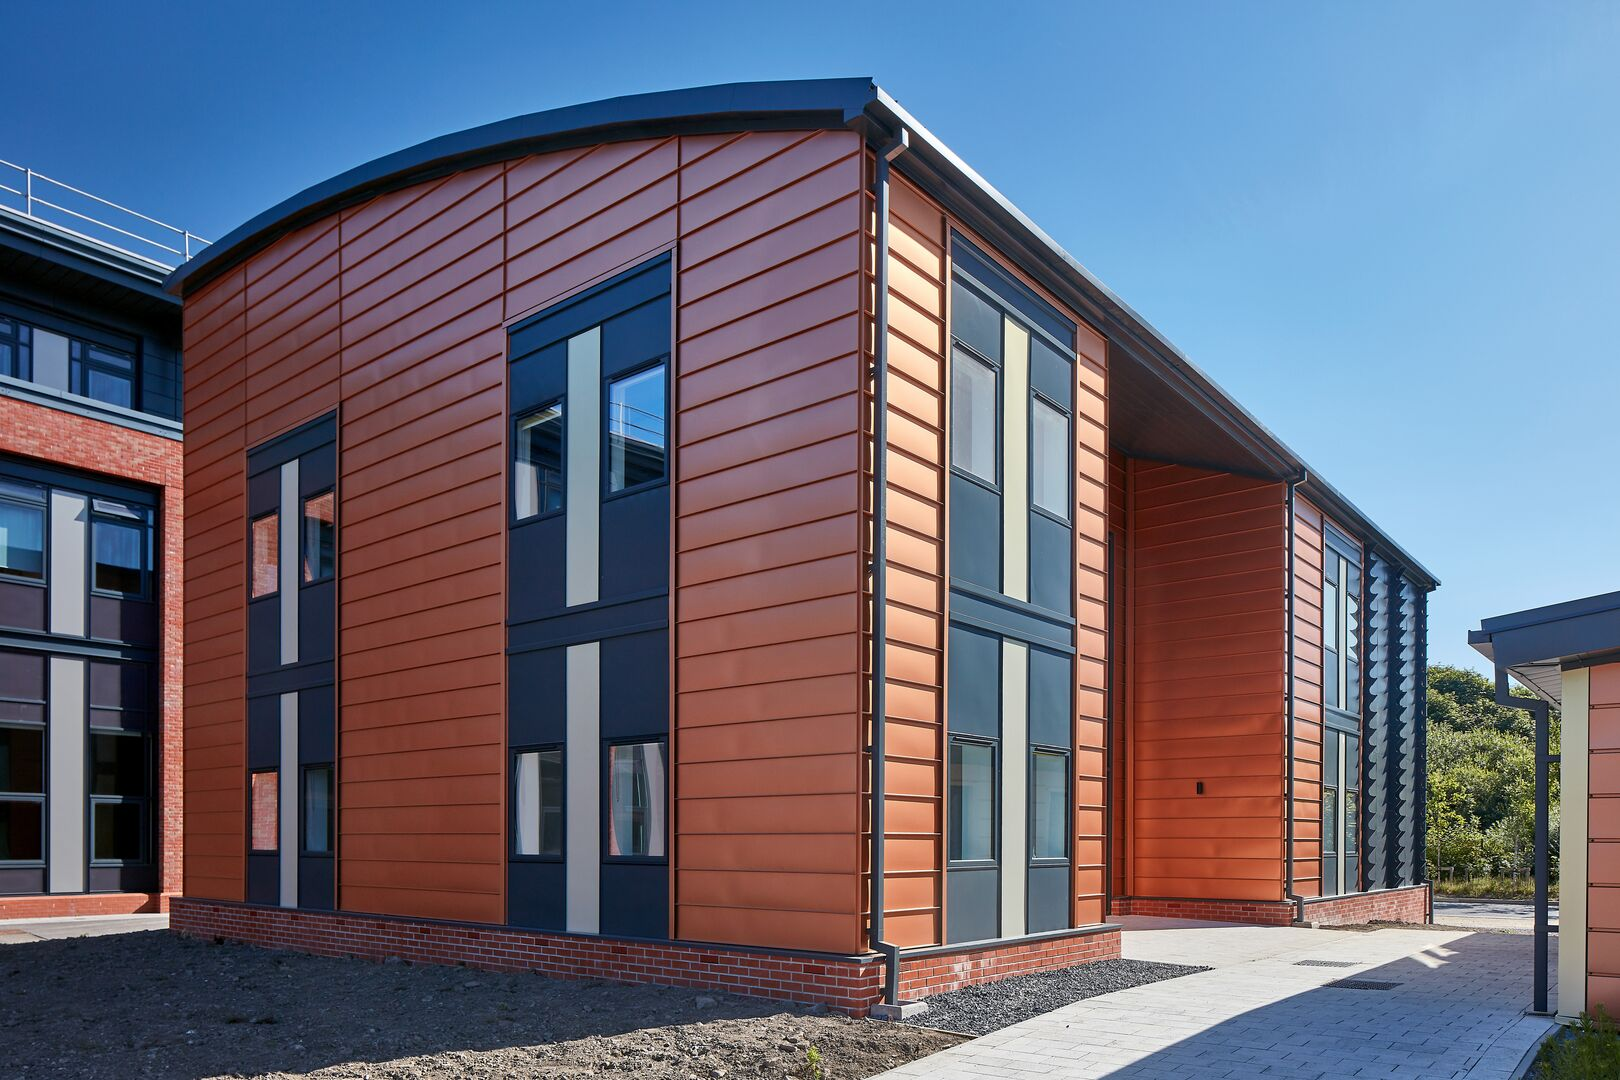 Active classroom featuring Colorcoat Urban standing seam cladding